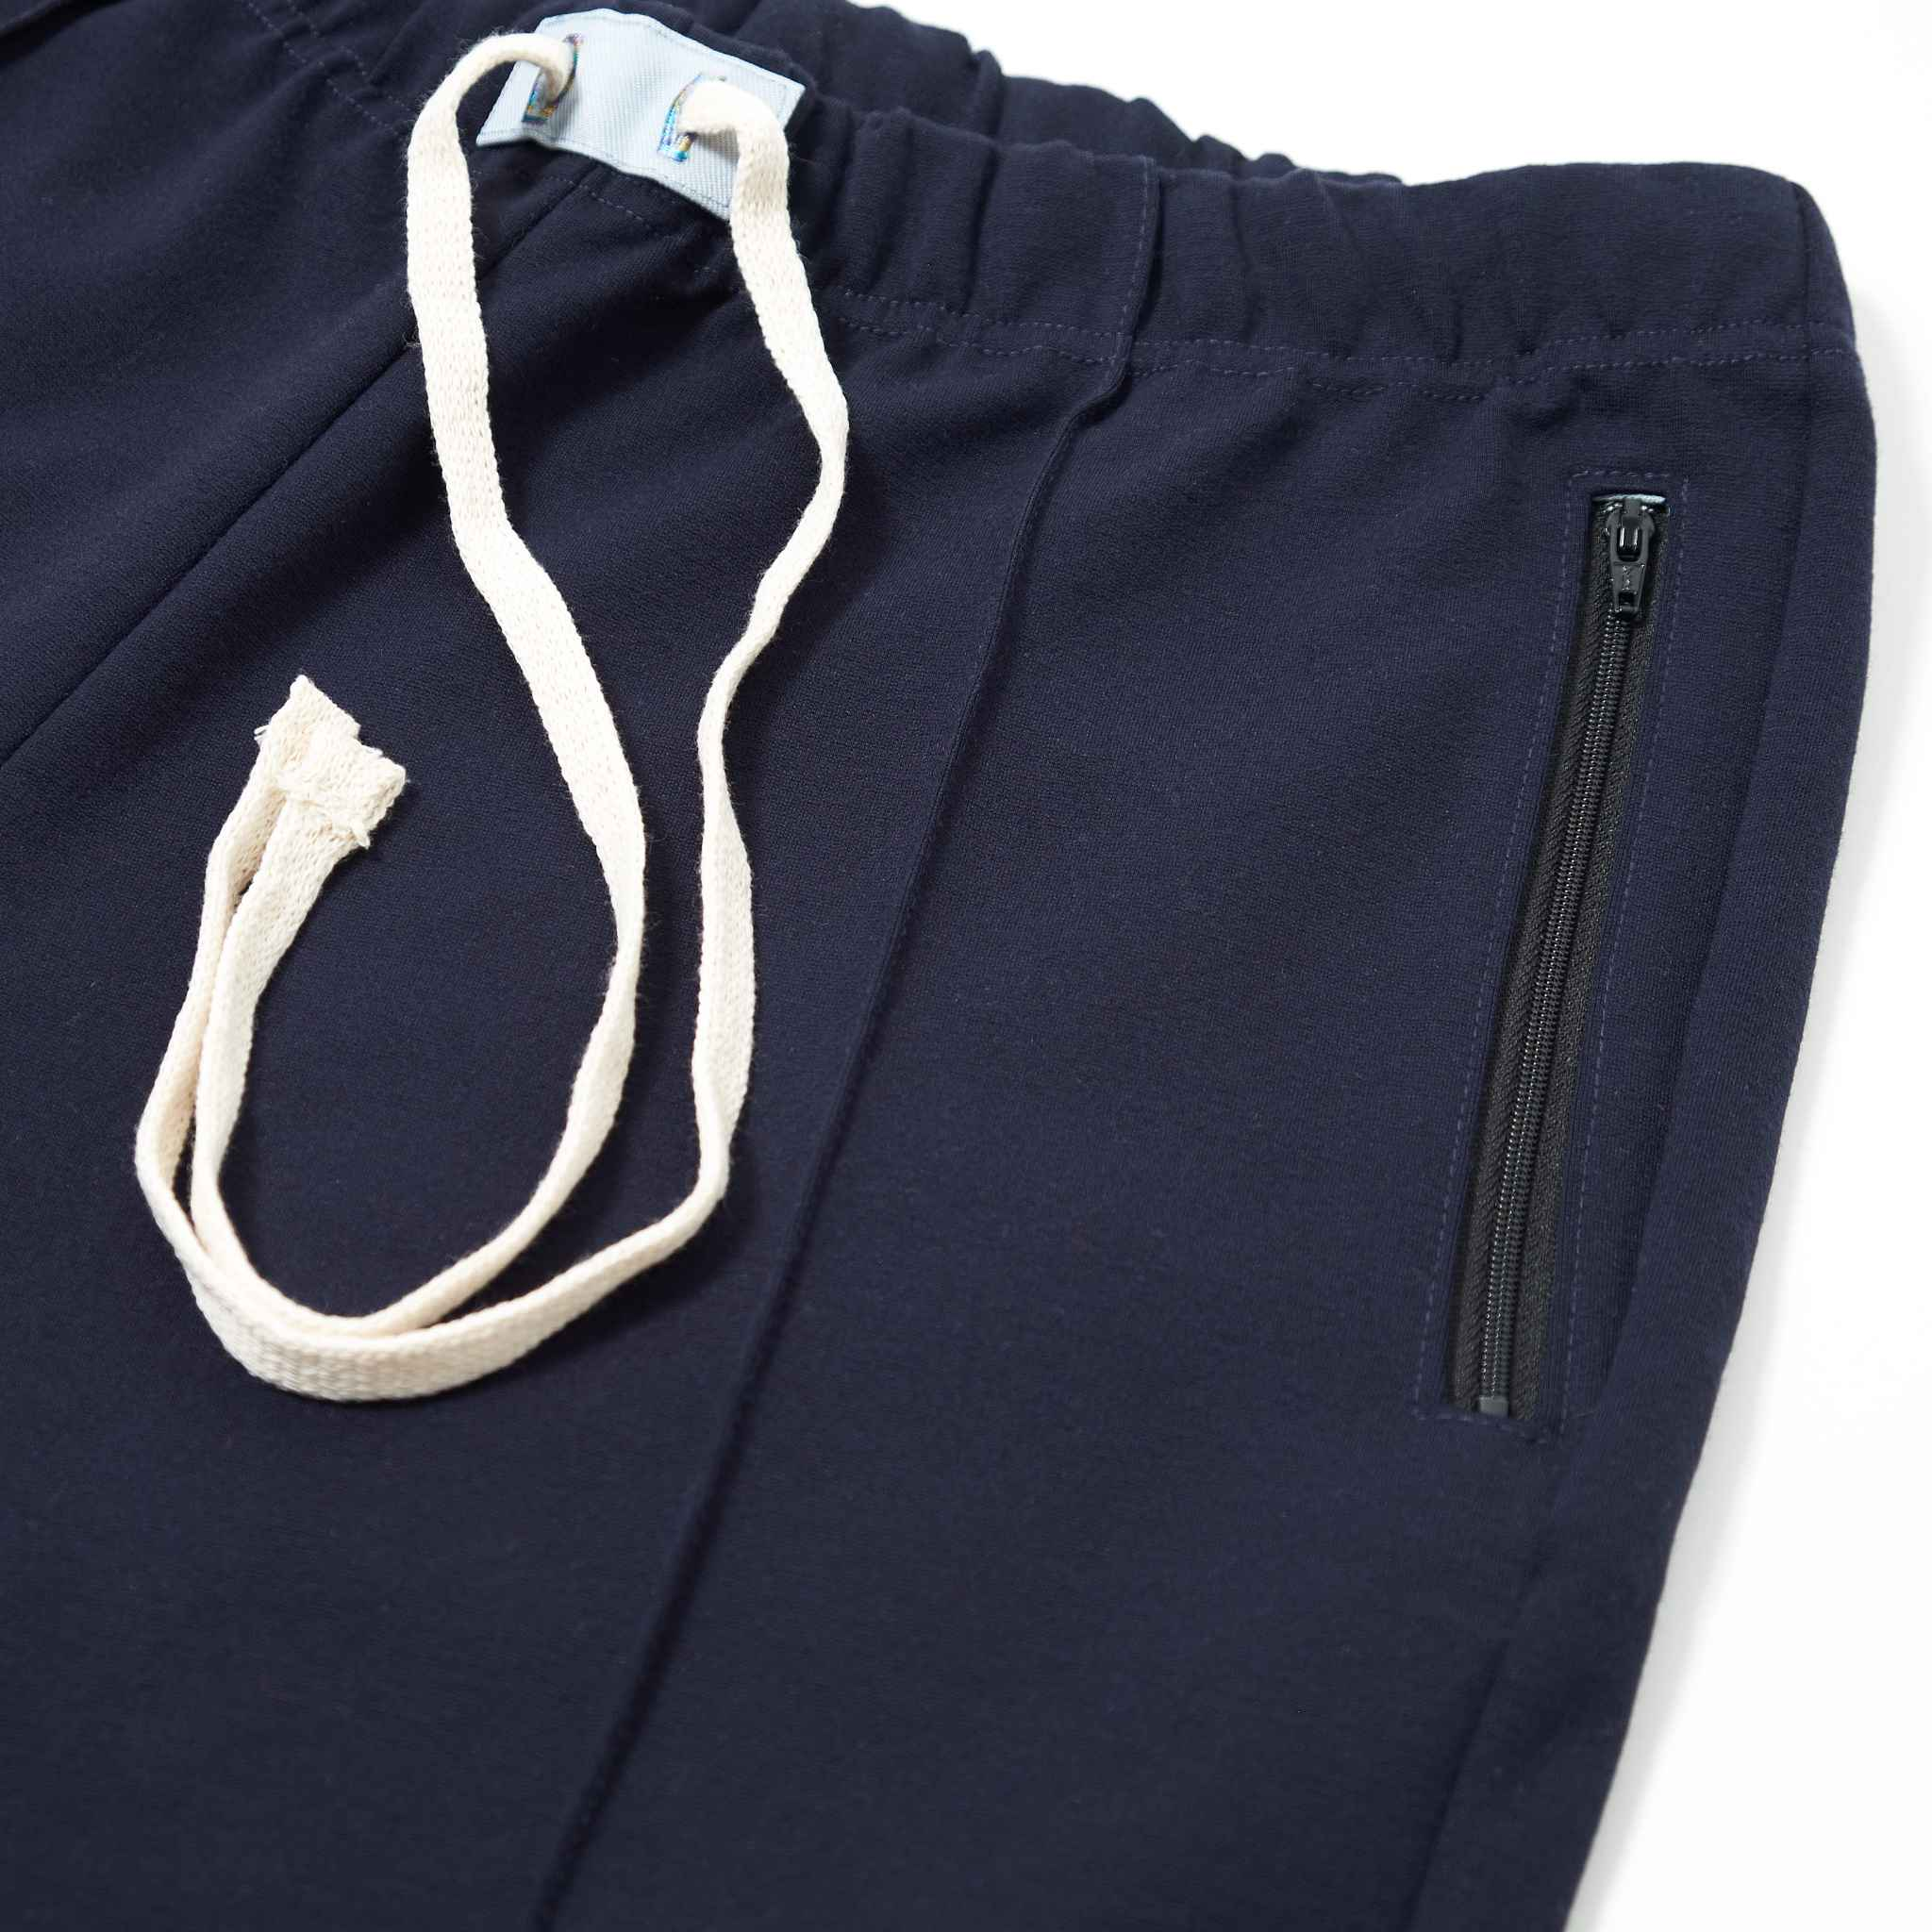 Cogs Shop | The First Summer | Cropped Pin Tuck Pants zip pocket